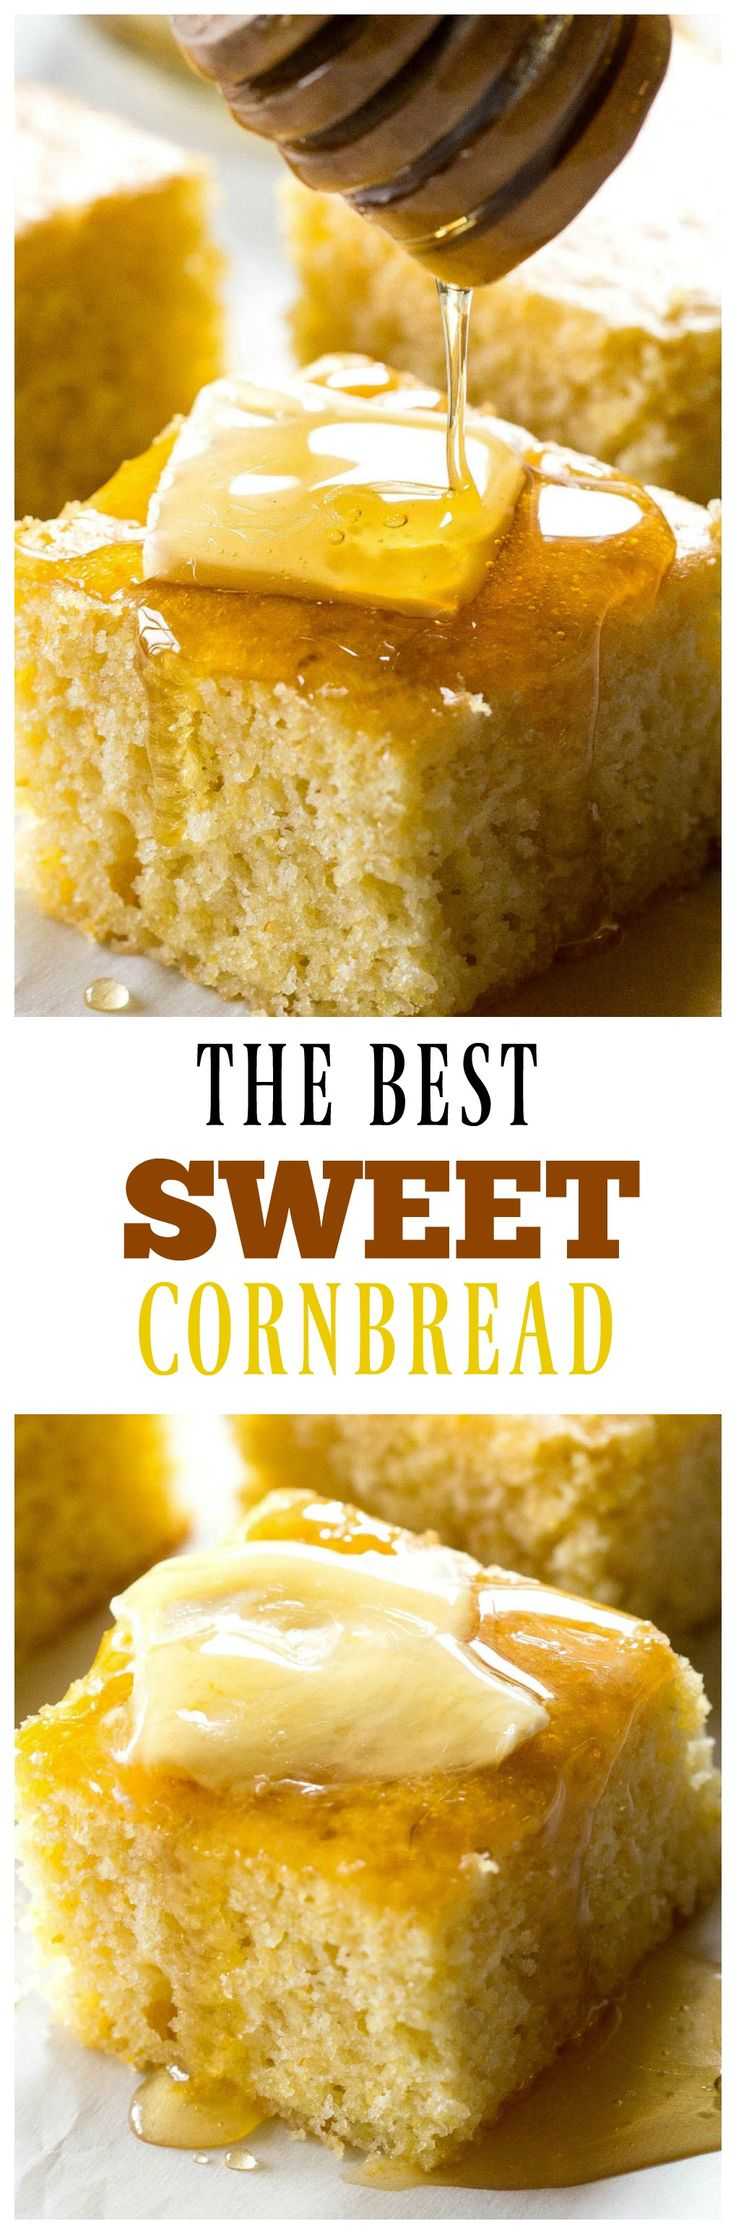 The Best Sweet Cornbread - soft, tender cornbread that's sweet just like I like it.